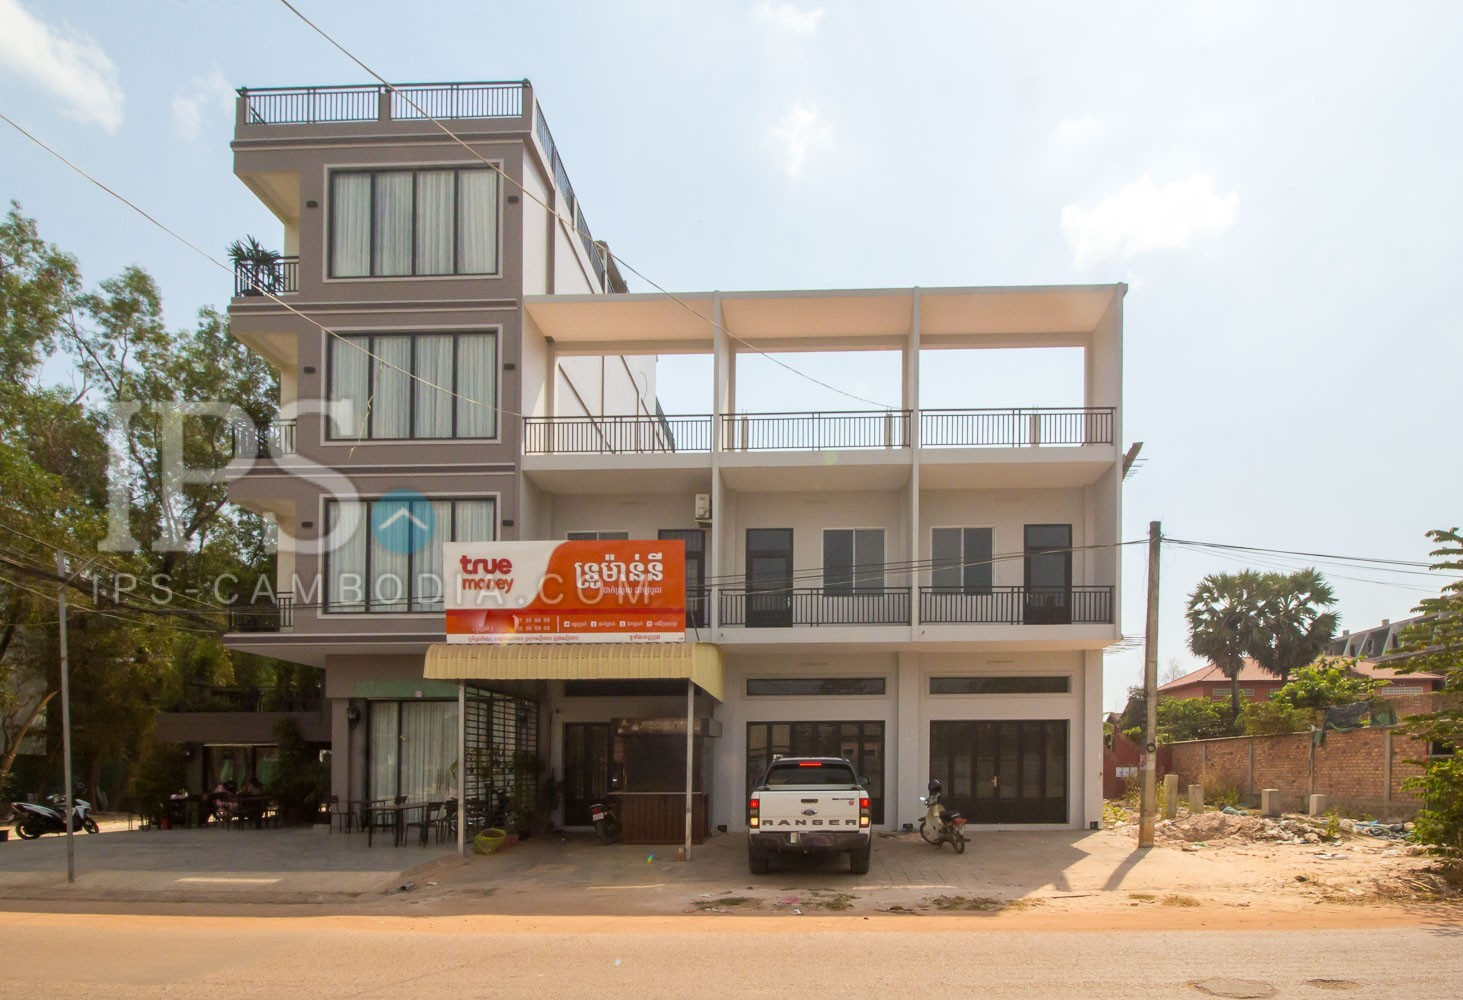 2 Bedroom Flat  For Sale - Kouk Chak, Siem Reap